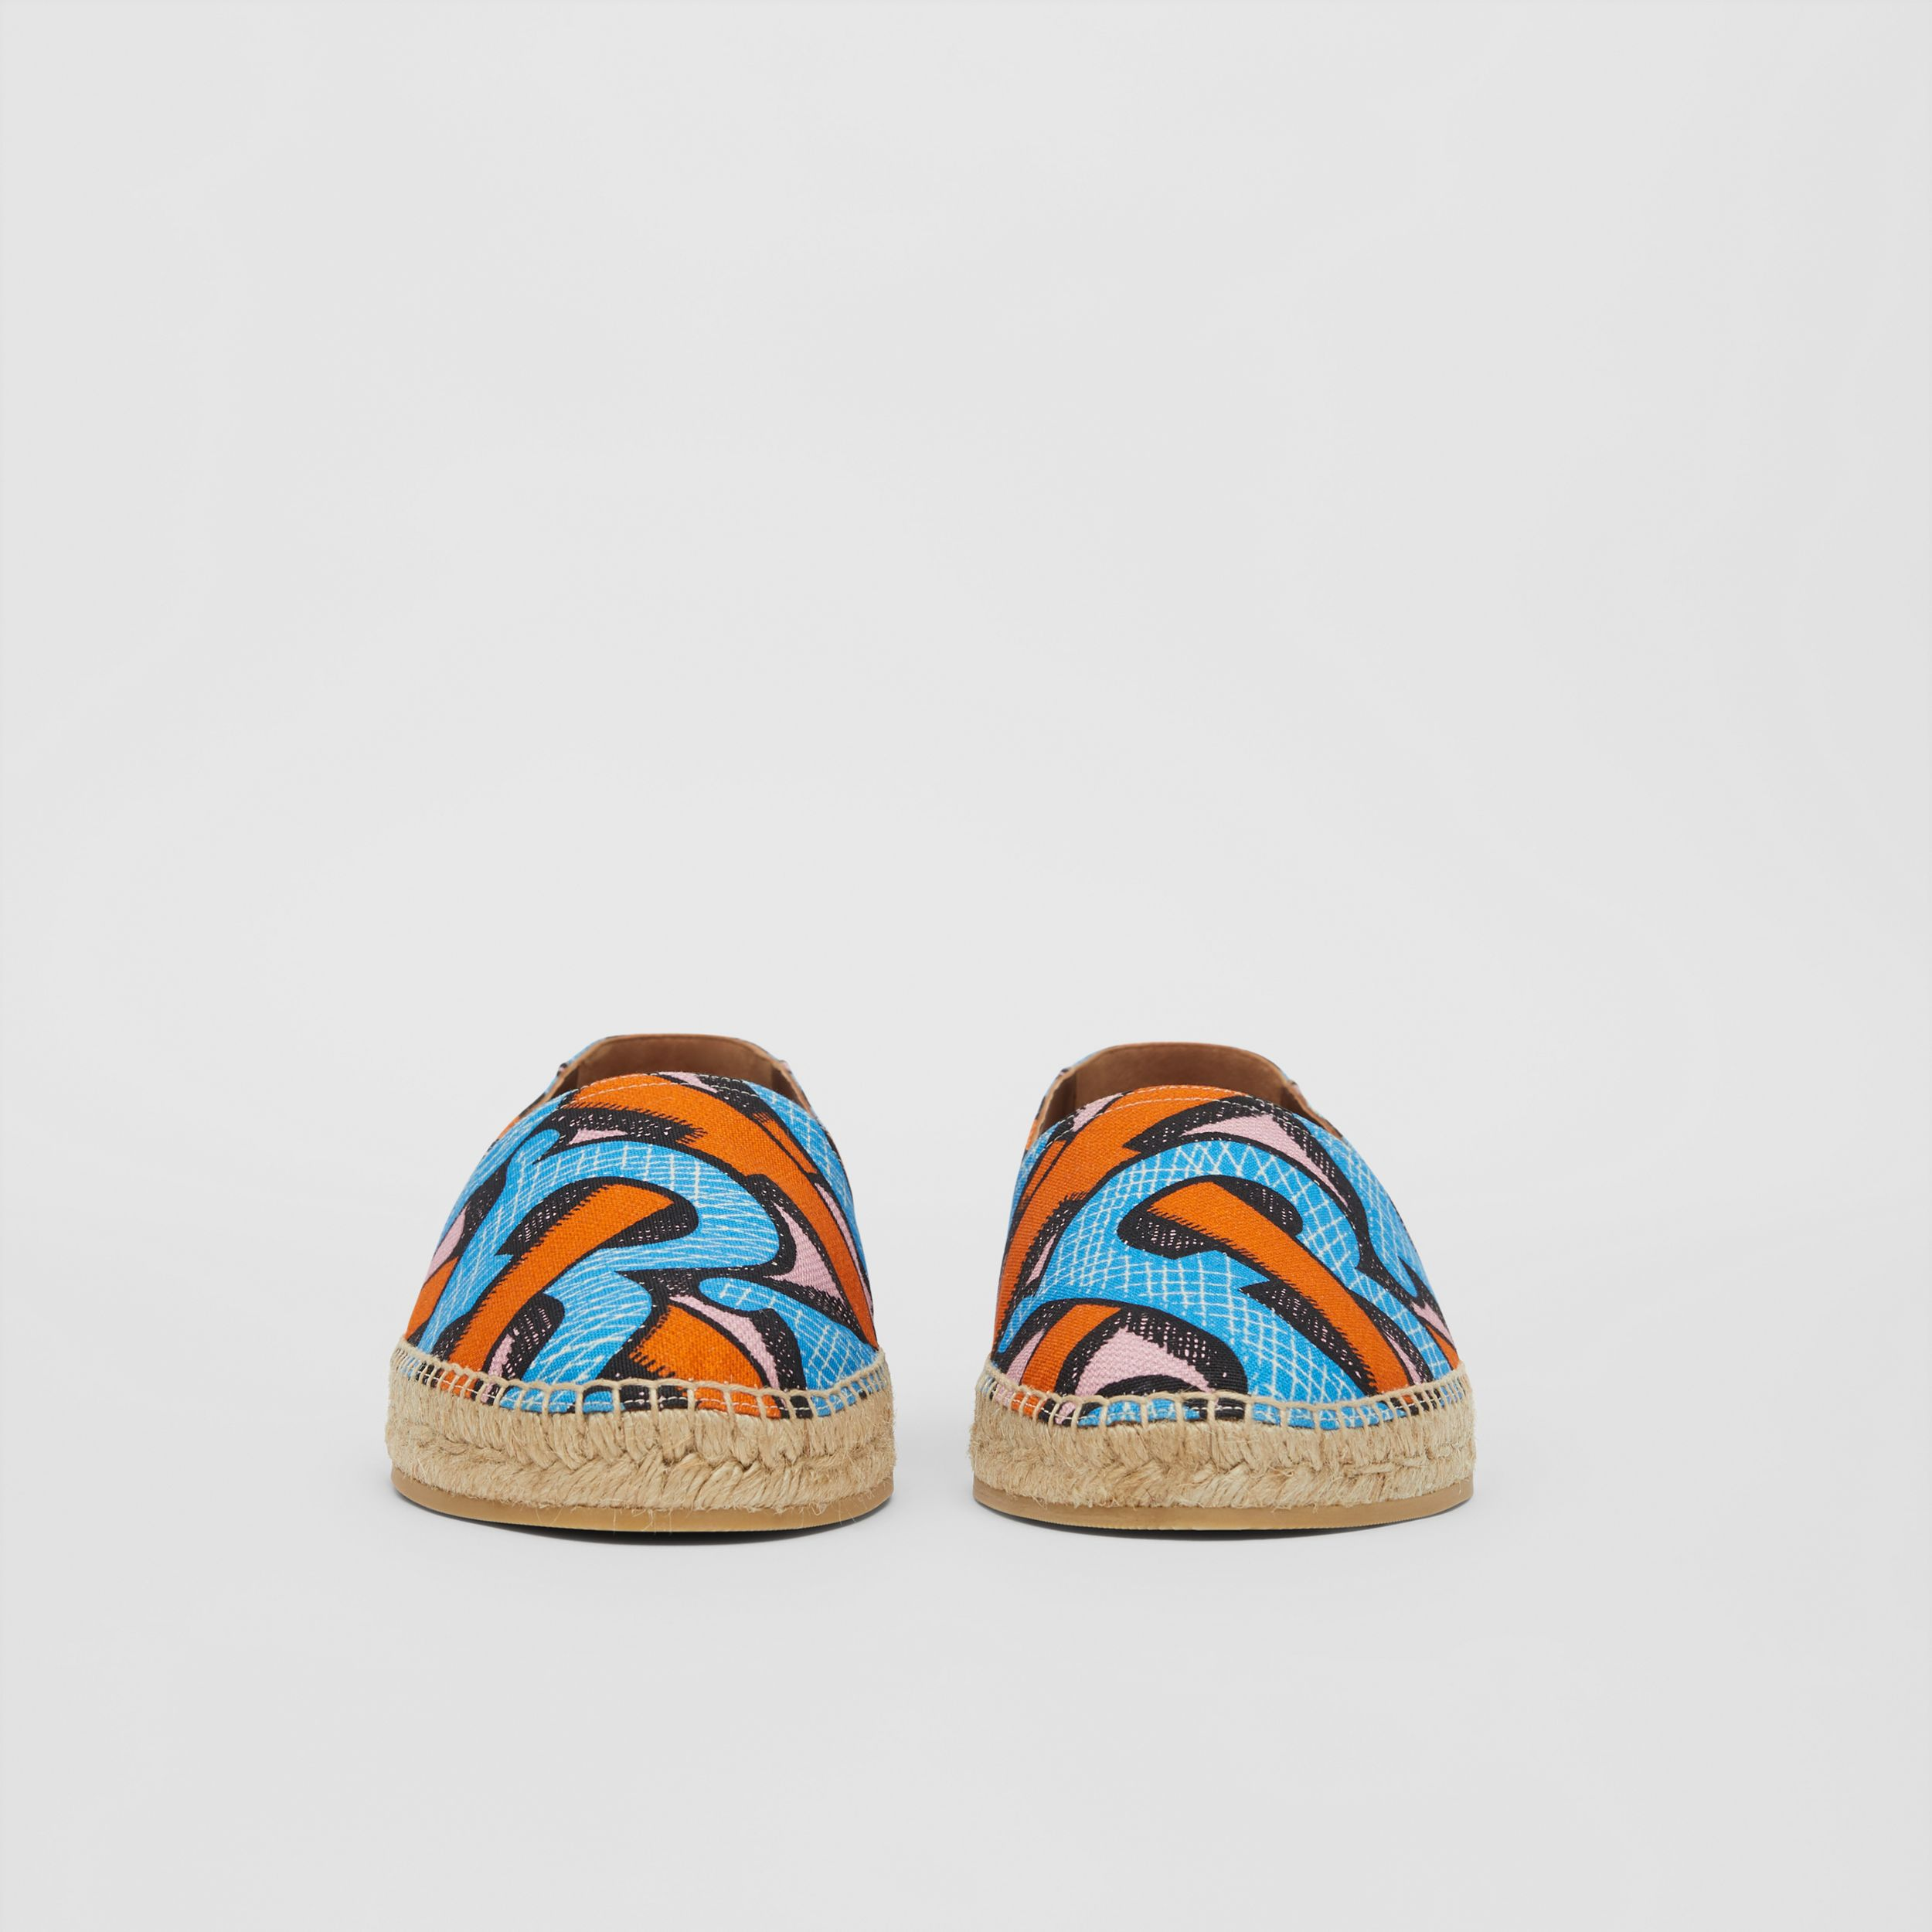 Monogram Print Cotton Canvas Espadrilles in Bright Cobalt - Men | Burberry - 4